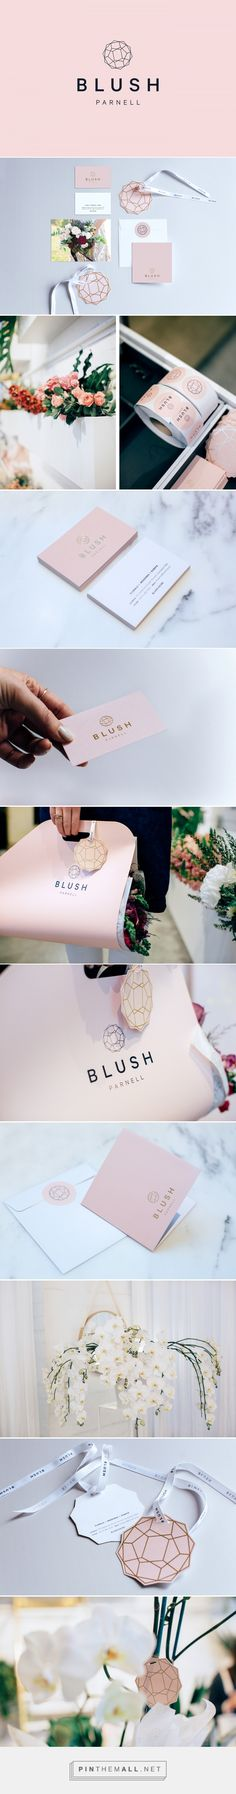 Blush Parnell Floral Styling Studio Branding by Hannah Souter | Fivestar Branding Agency – Design and Branding Agency & Curated Inspiration Gallery